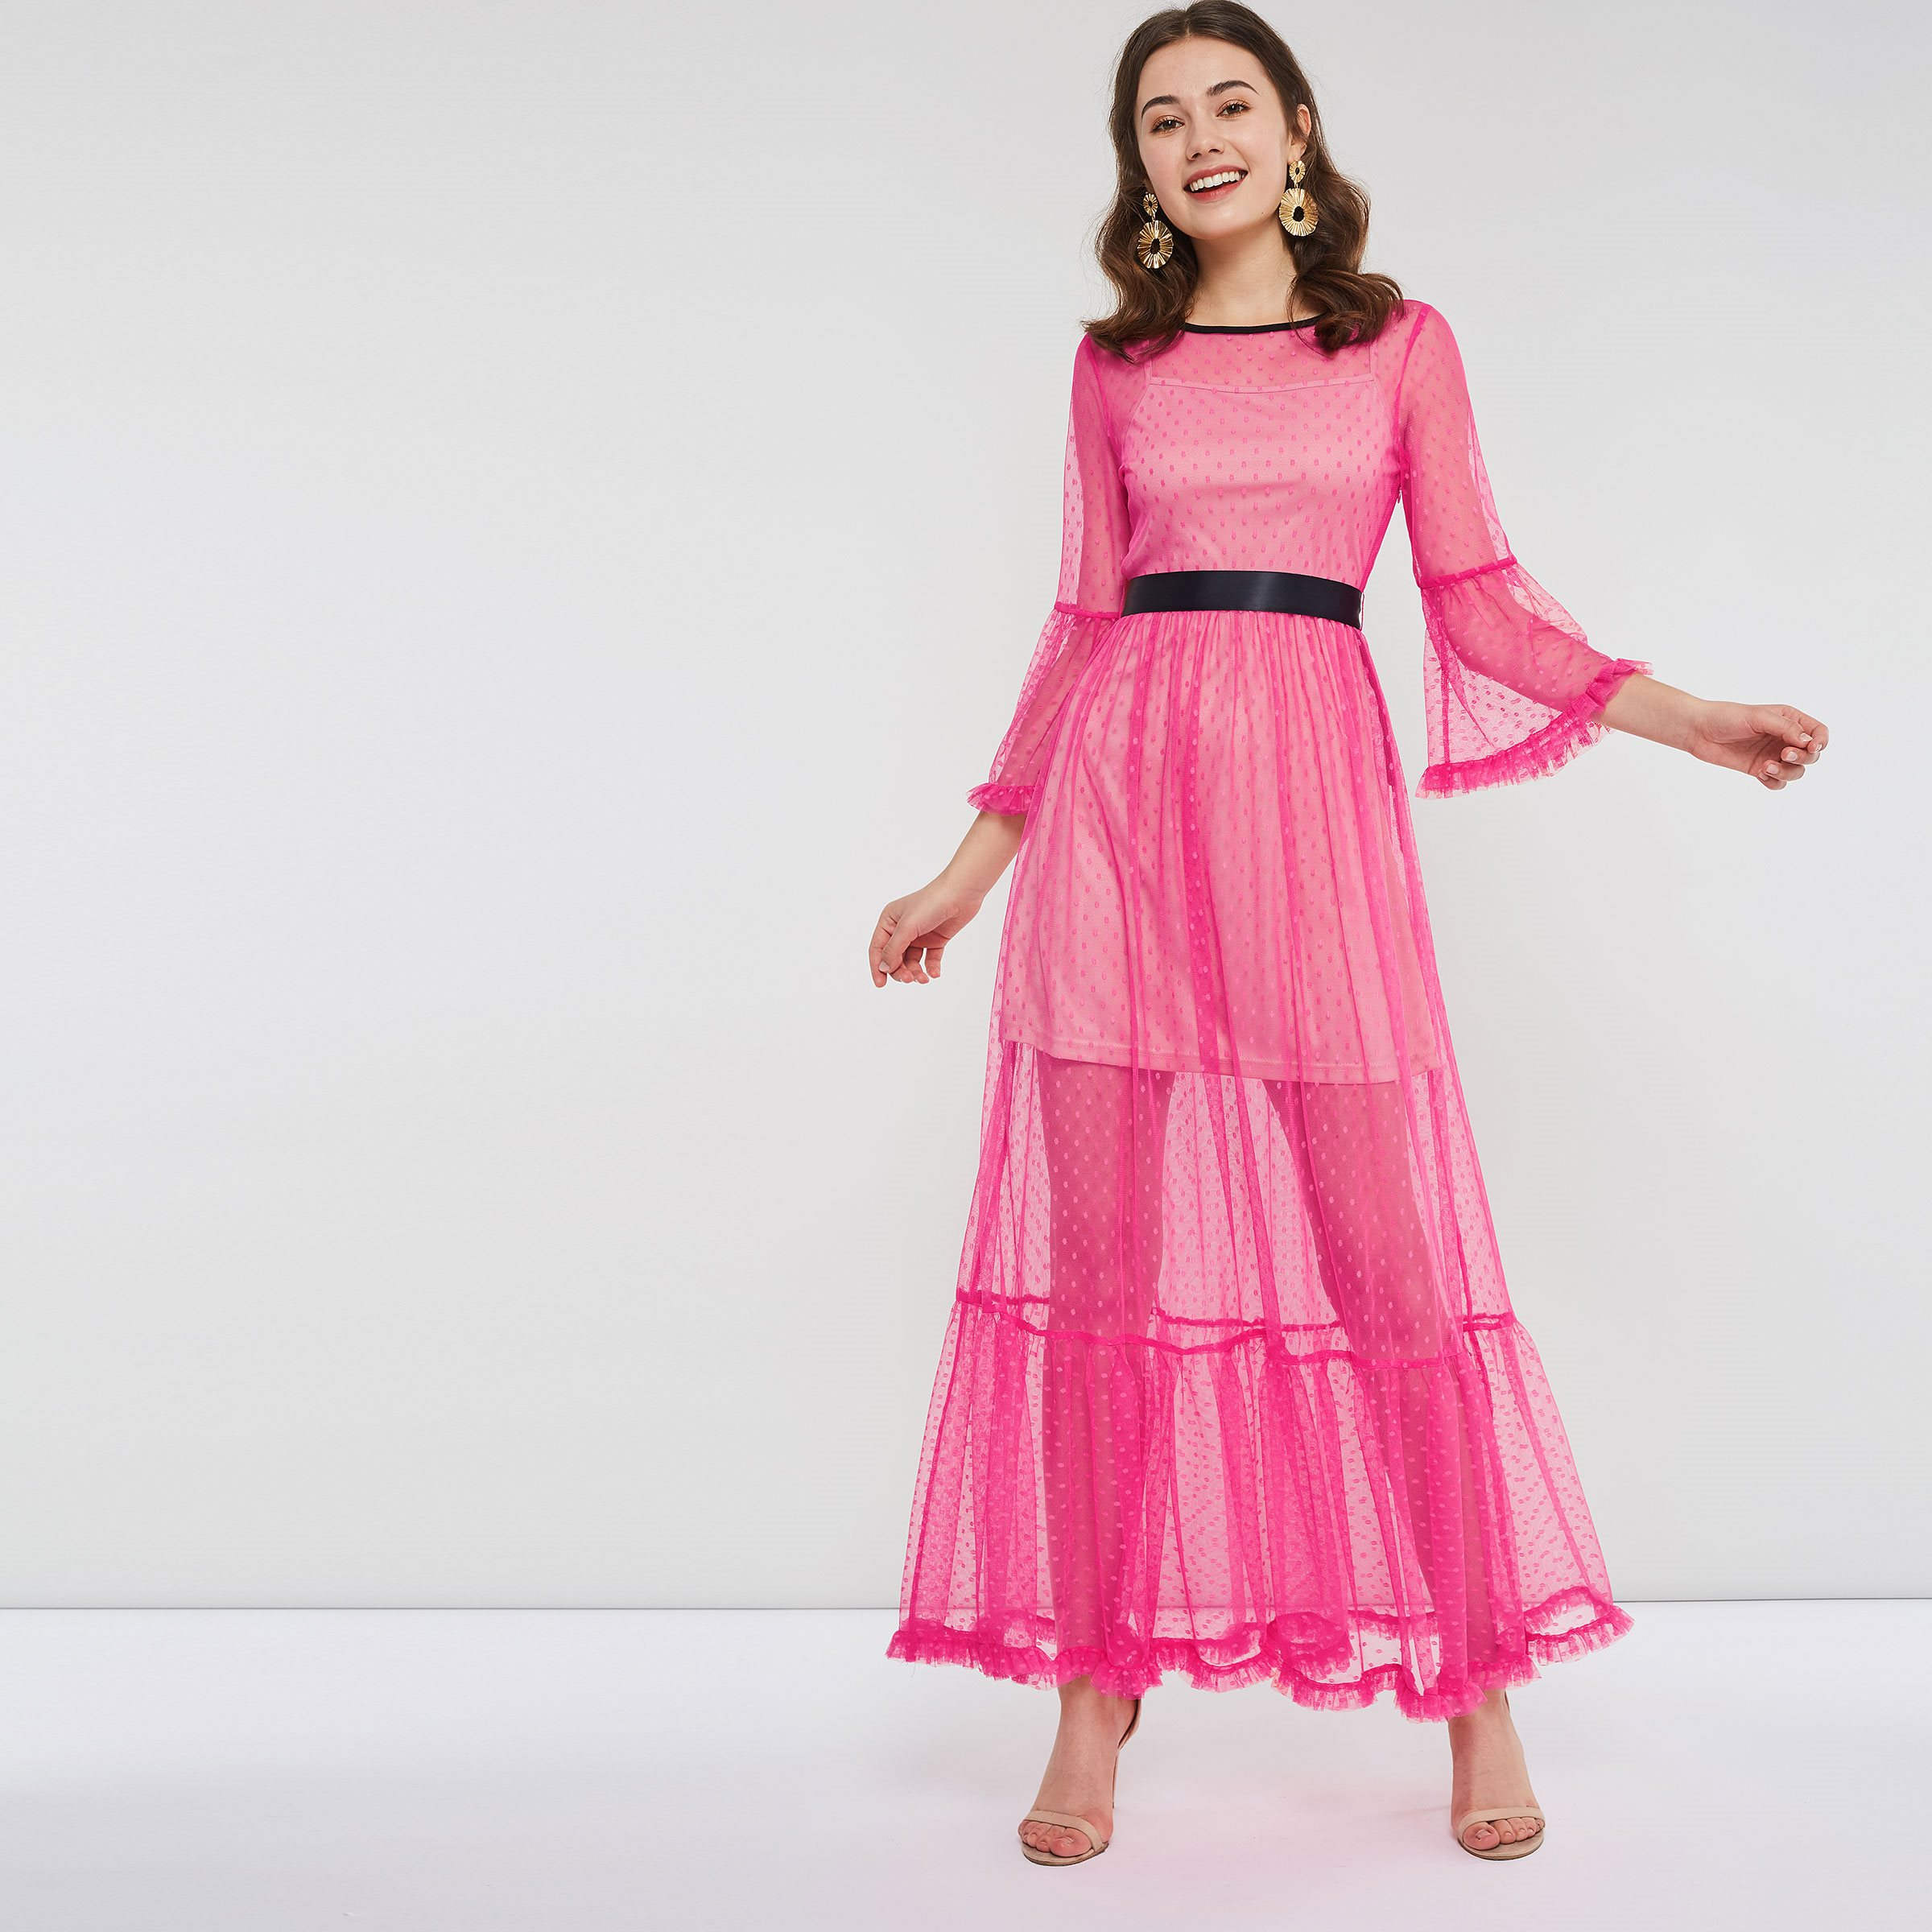 Evening Party Women Two Piece Extra Long Fuchsia Dress Spring Summer Polka  Dot Ribbon Belt Ruffle b72eea90f9f8